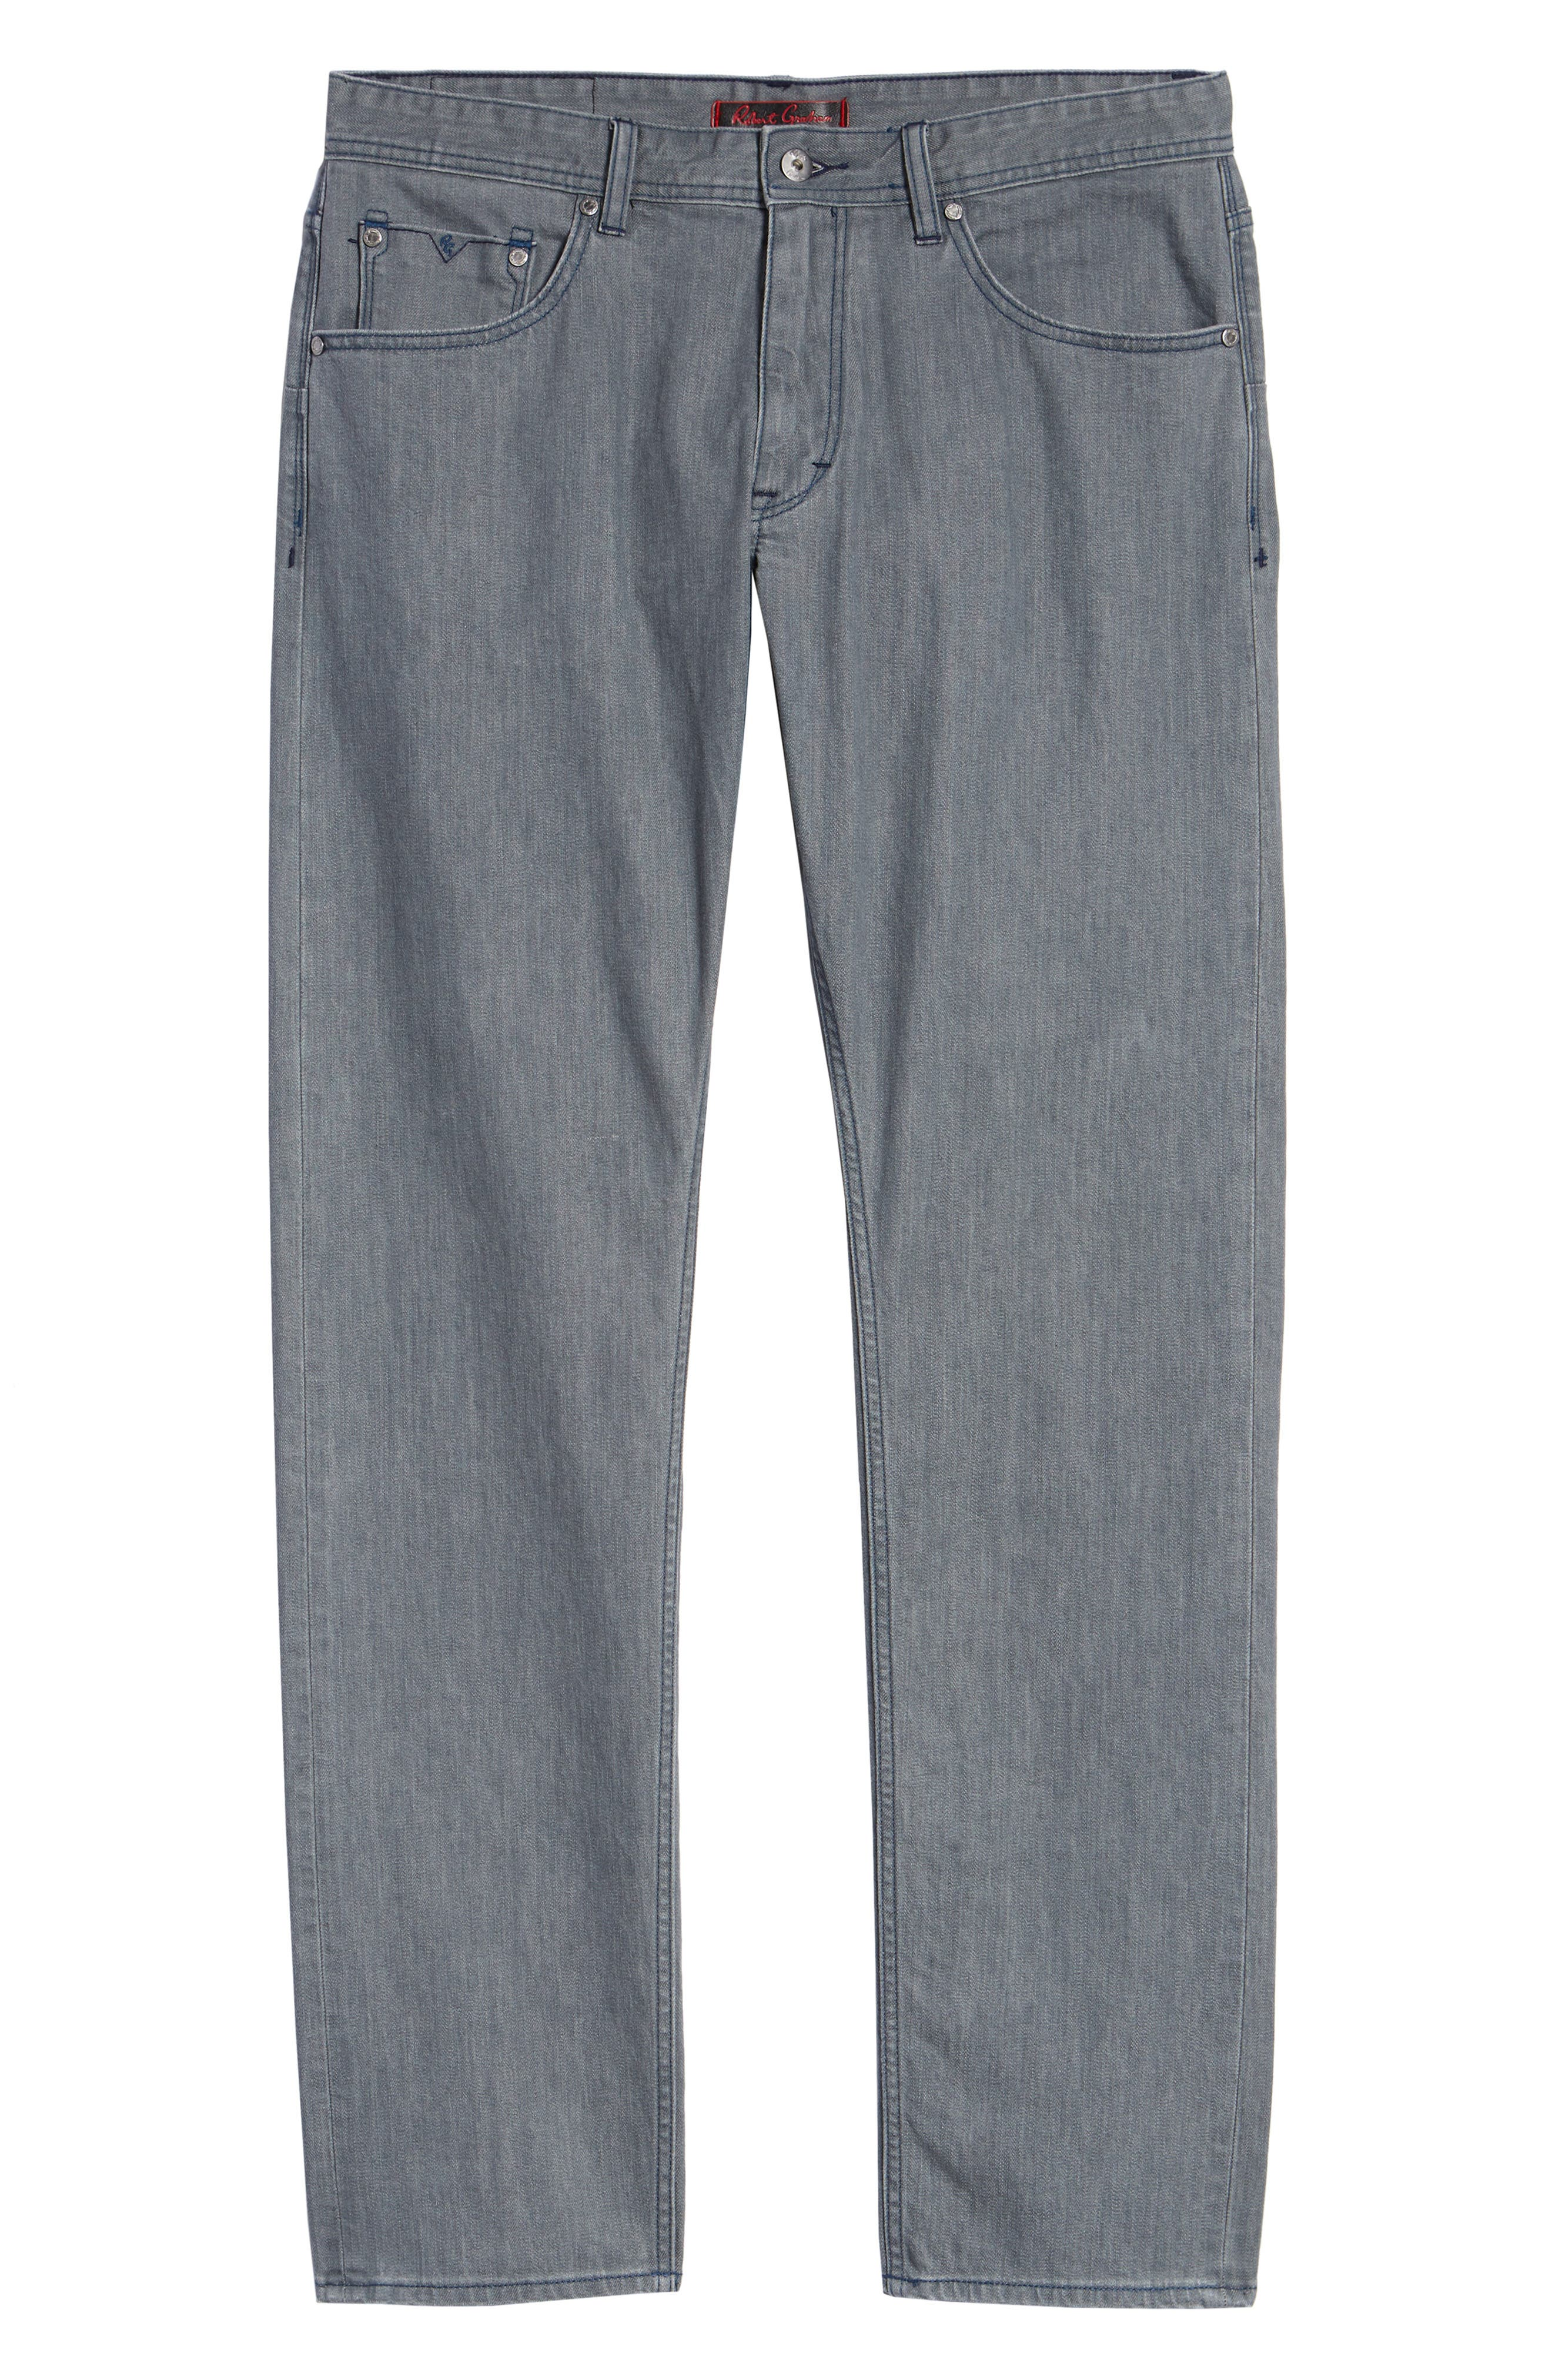 Bray Tailored Straight Leg Jeans,                             Alternate thumbnail 6, color,                             GREY